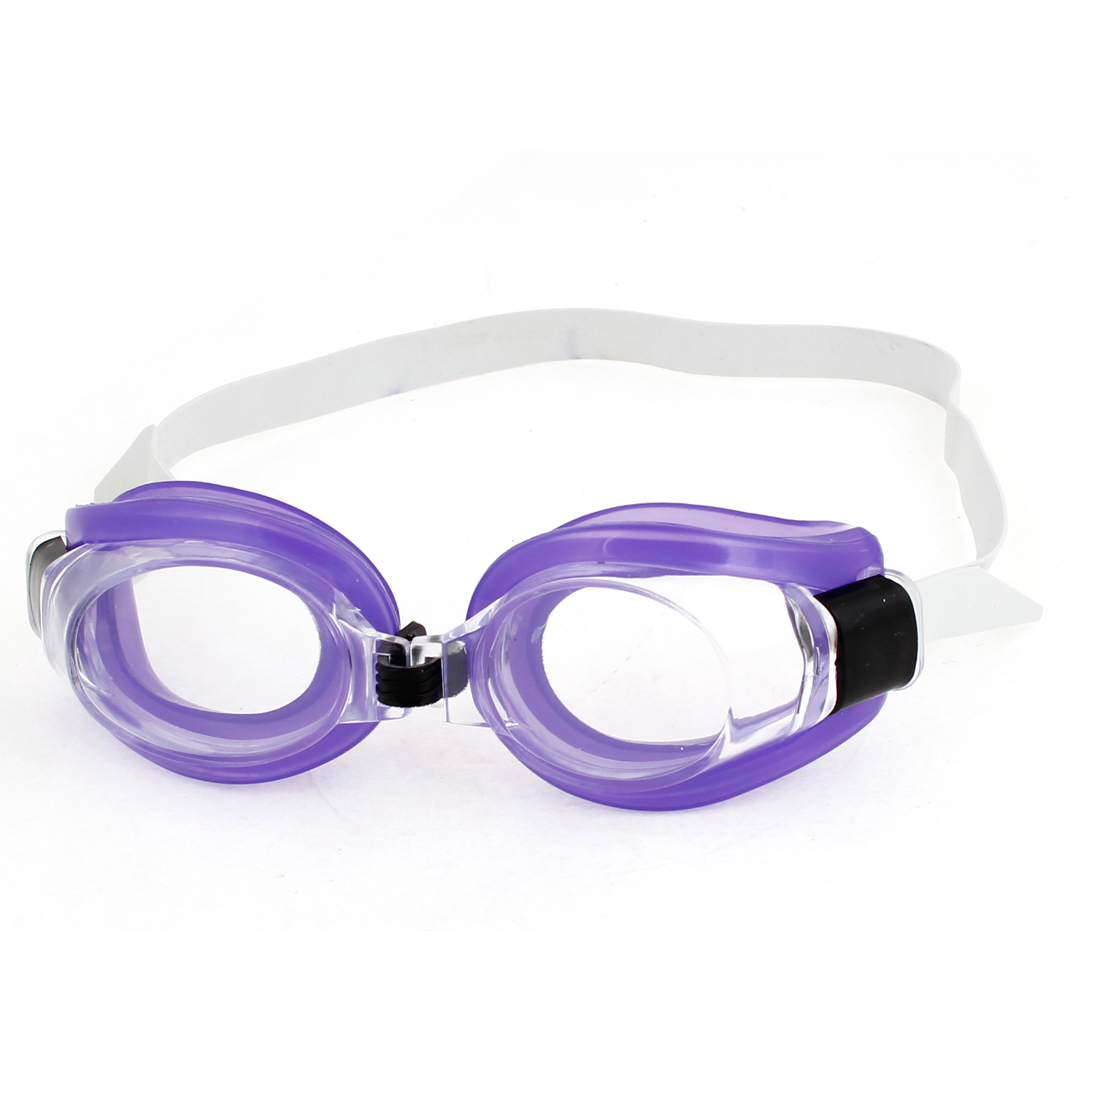 Children Purple Stretchy Antislip Ajustable Band Swimming Goggles Glasses